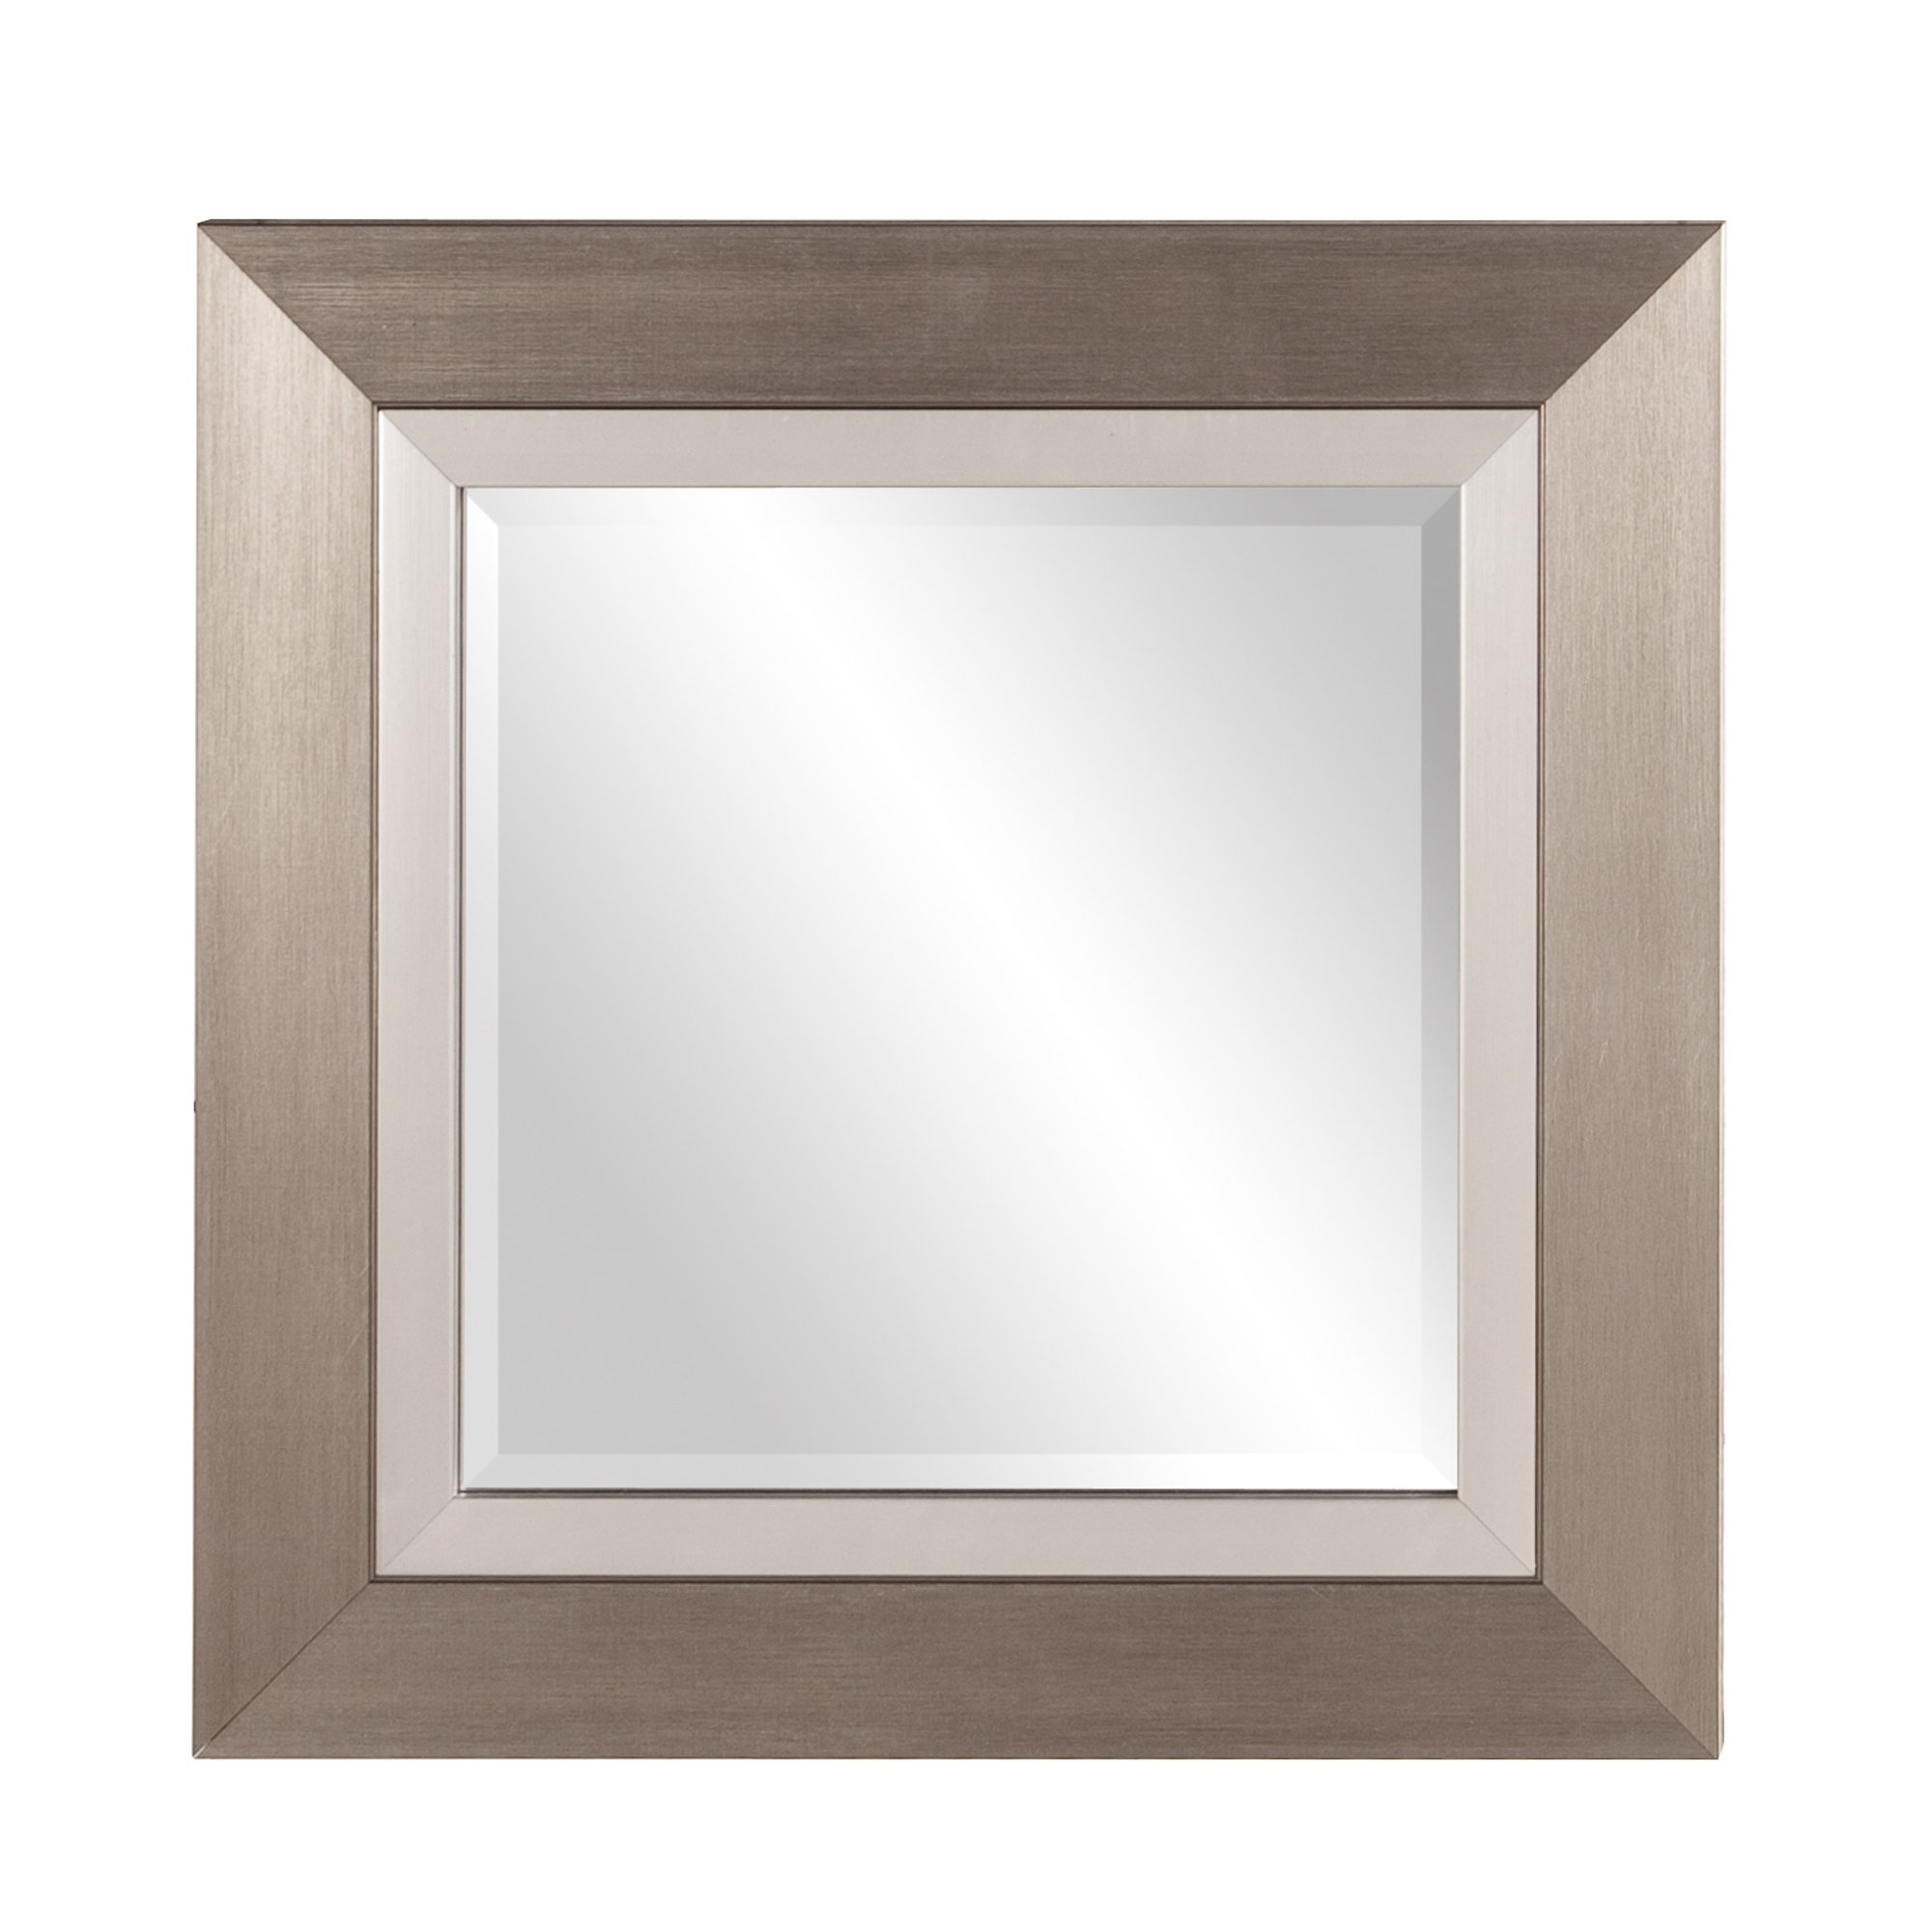 Howard Elliott 69042 Chicago Square Mirror, 18 x 18-Inch, Brushed Silver